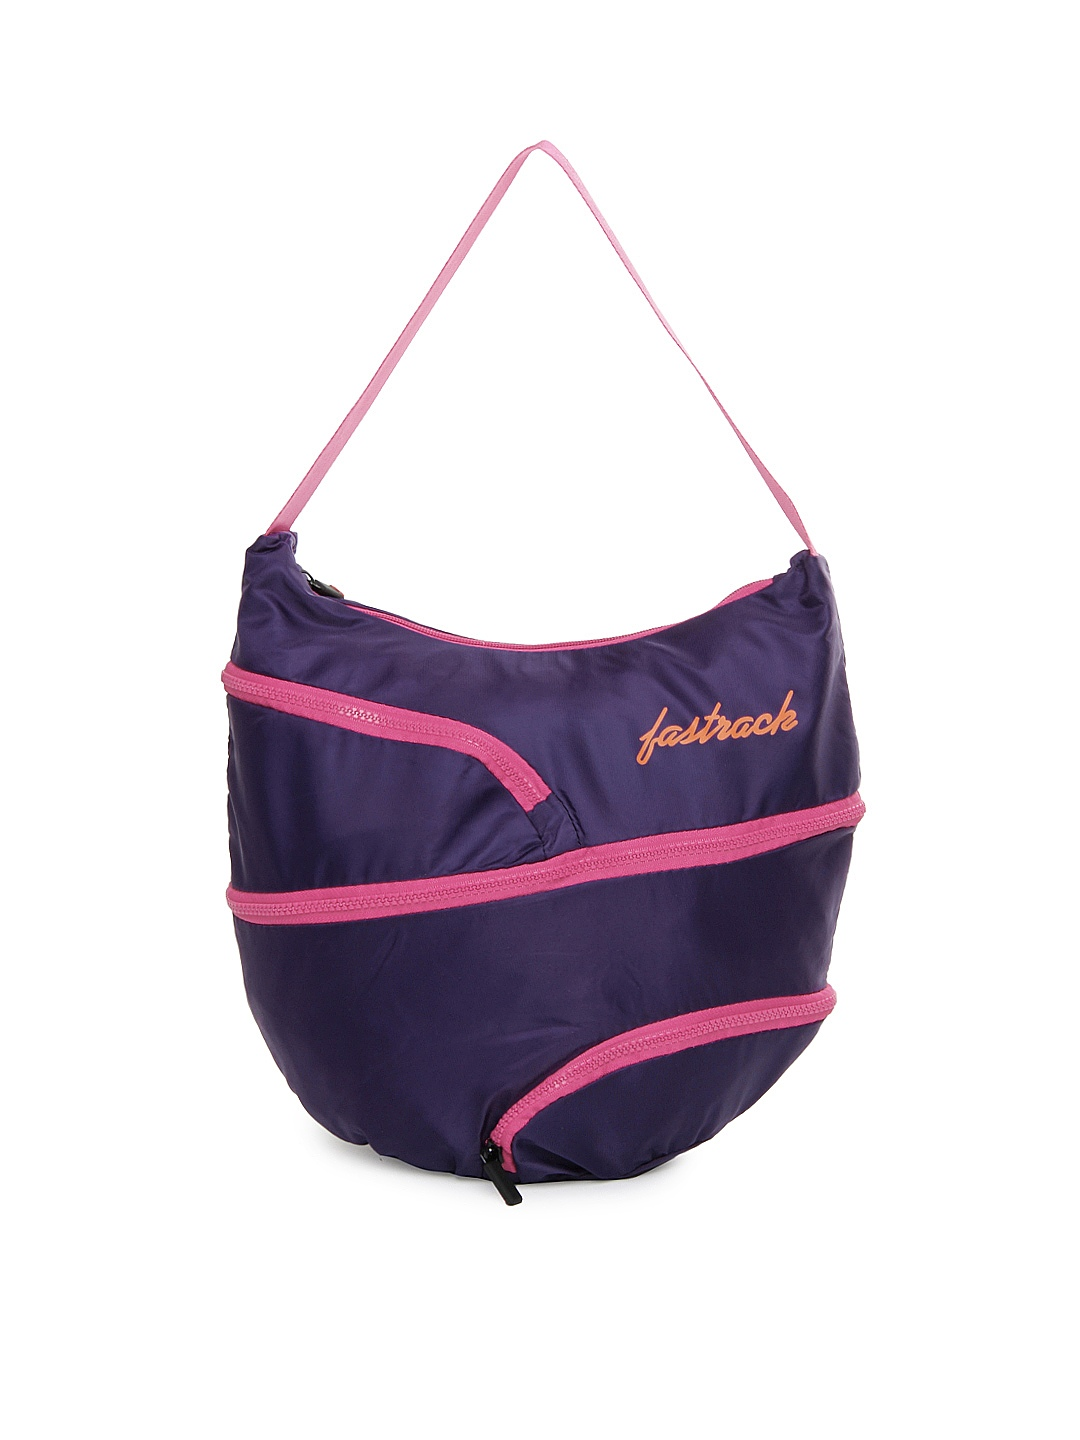 Myntra Fastrack Purple Shoulder Bag 253736 | Buy Myntra ...